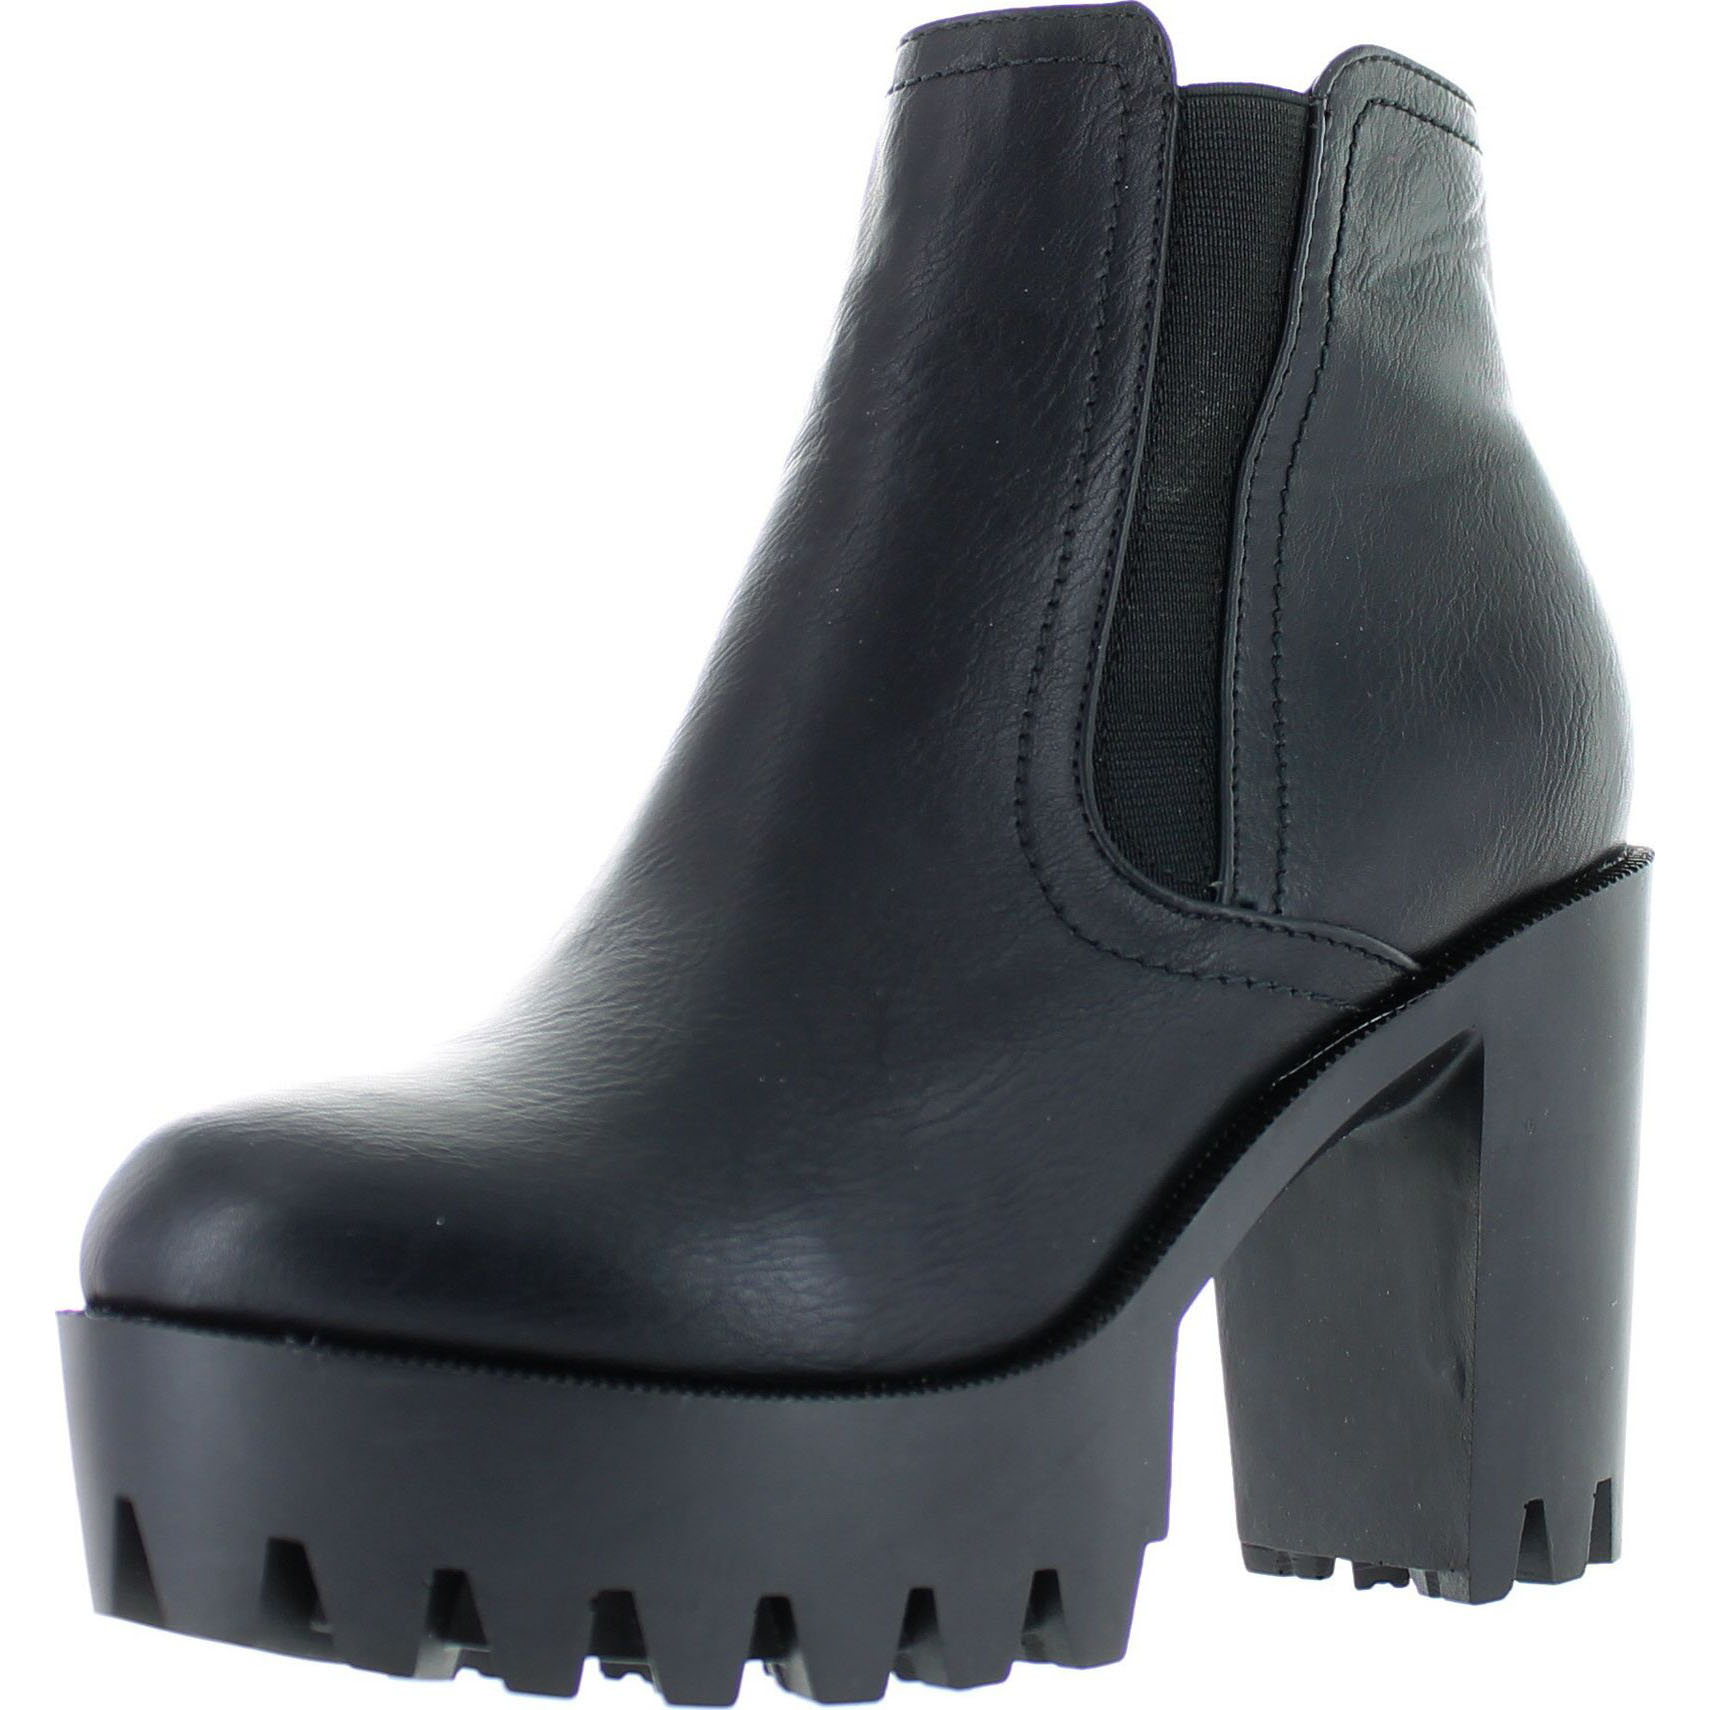 Refresh FABIA-01 Women's Elastic Side Zip Lug Sole Platform Chunky Ankle Boots